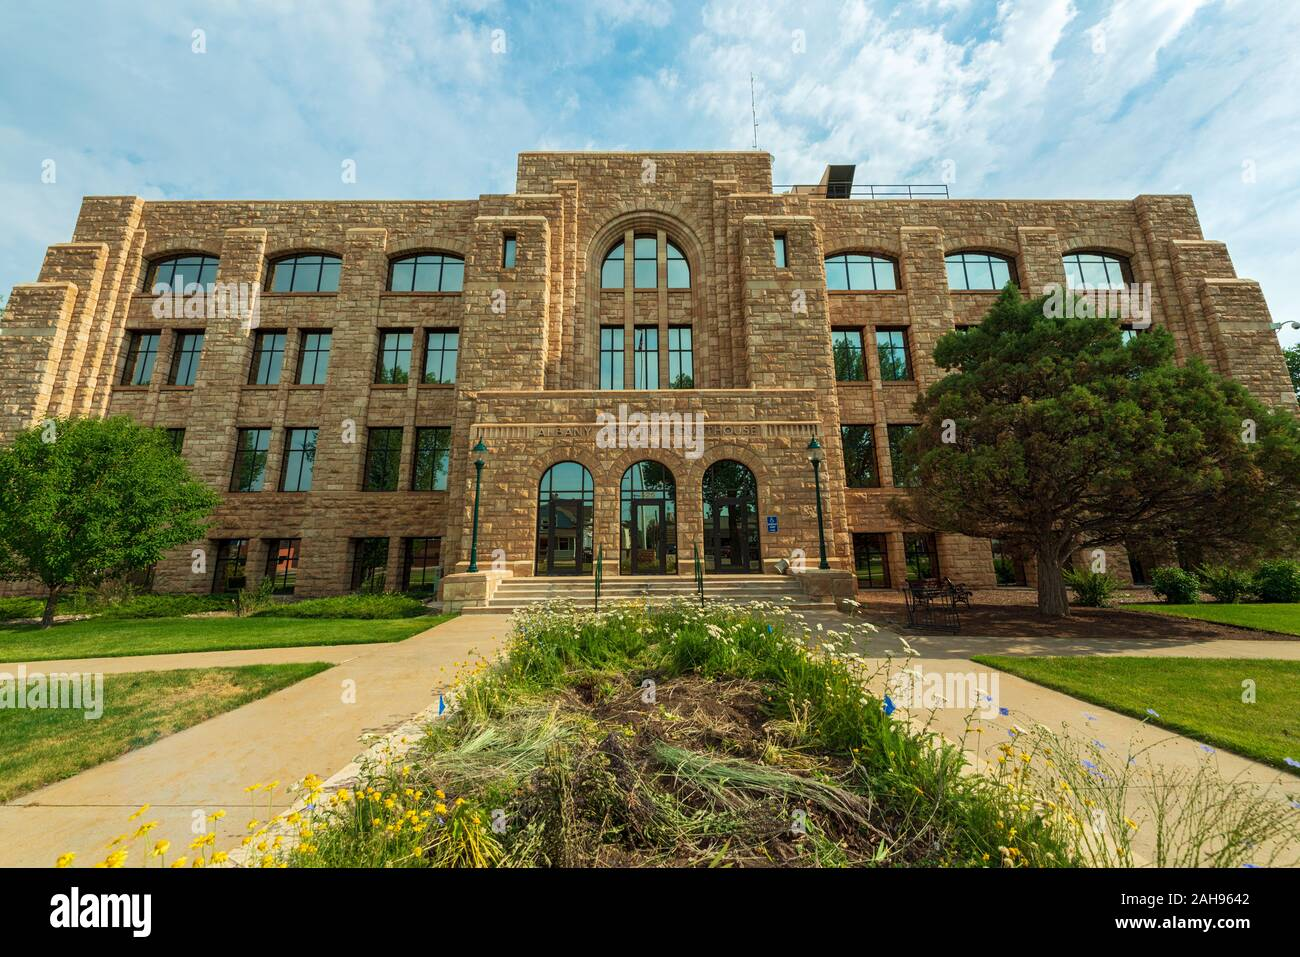 Laramie, Wyoming - July 25, 2014: The Main Entrance to the Albany County Courthouse Stock Photo